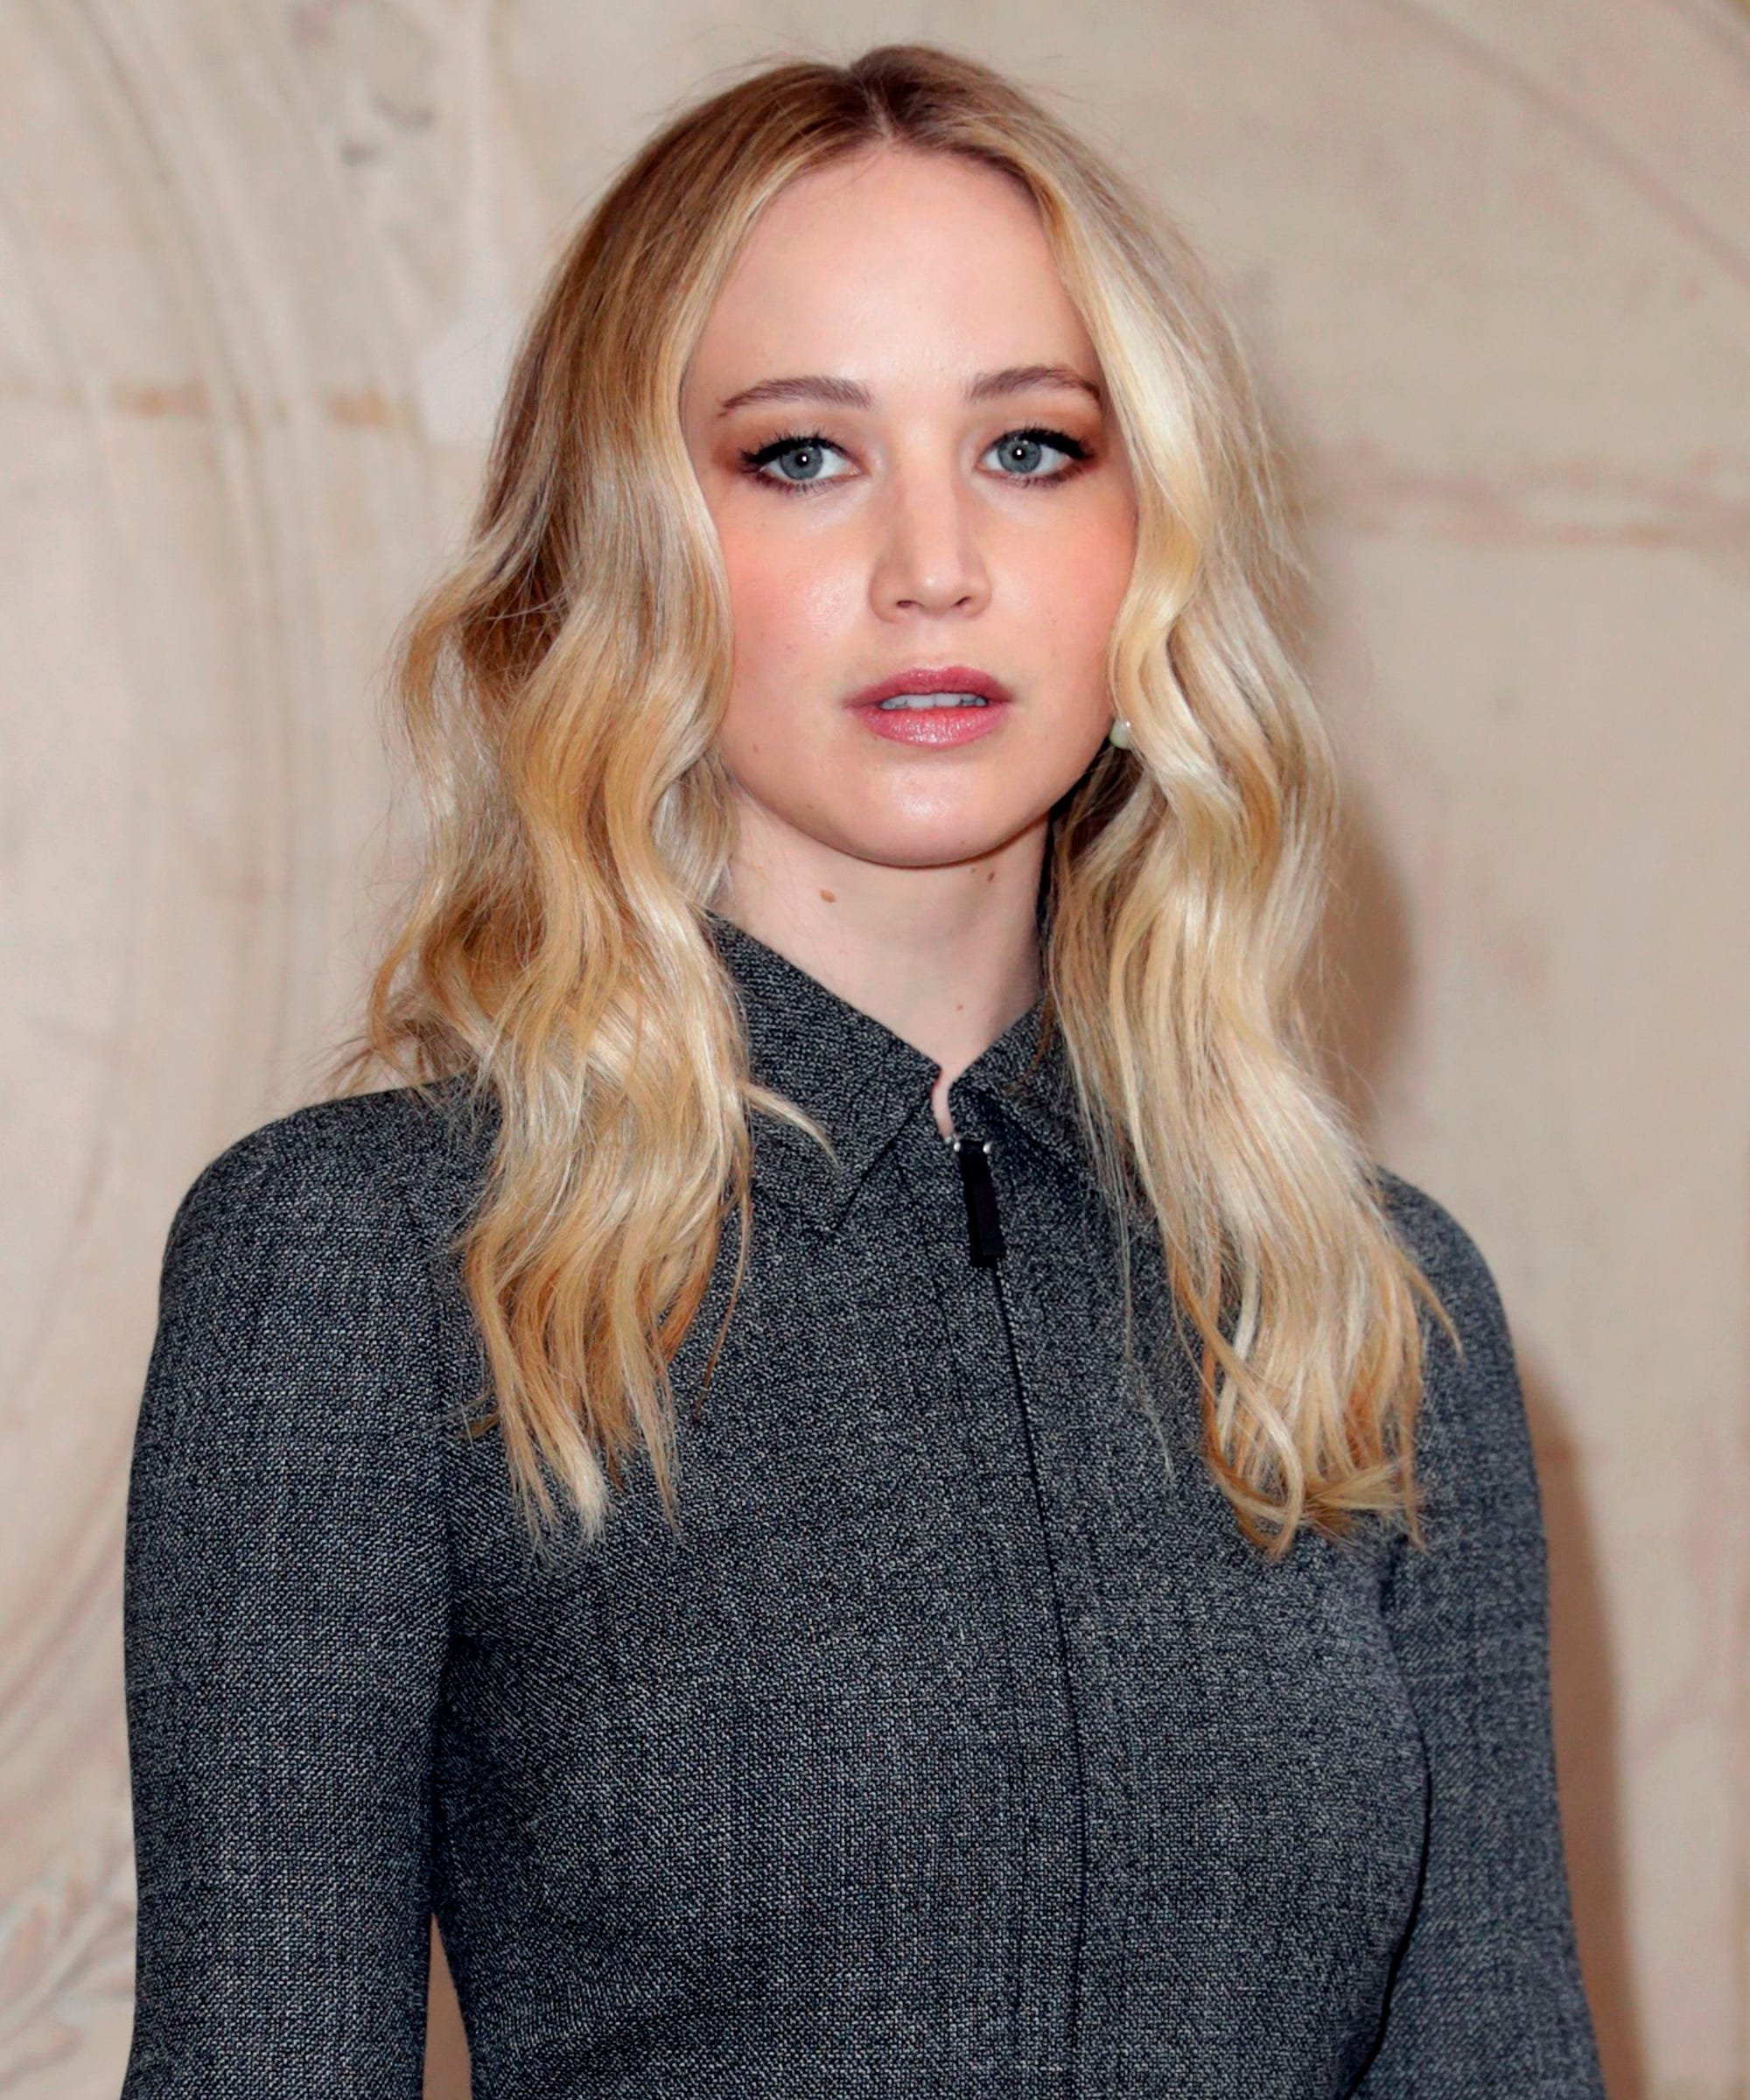 Jennifer Lawrence Nails Her Bridal Beauty Look At Her Engagement Party